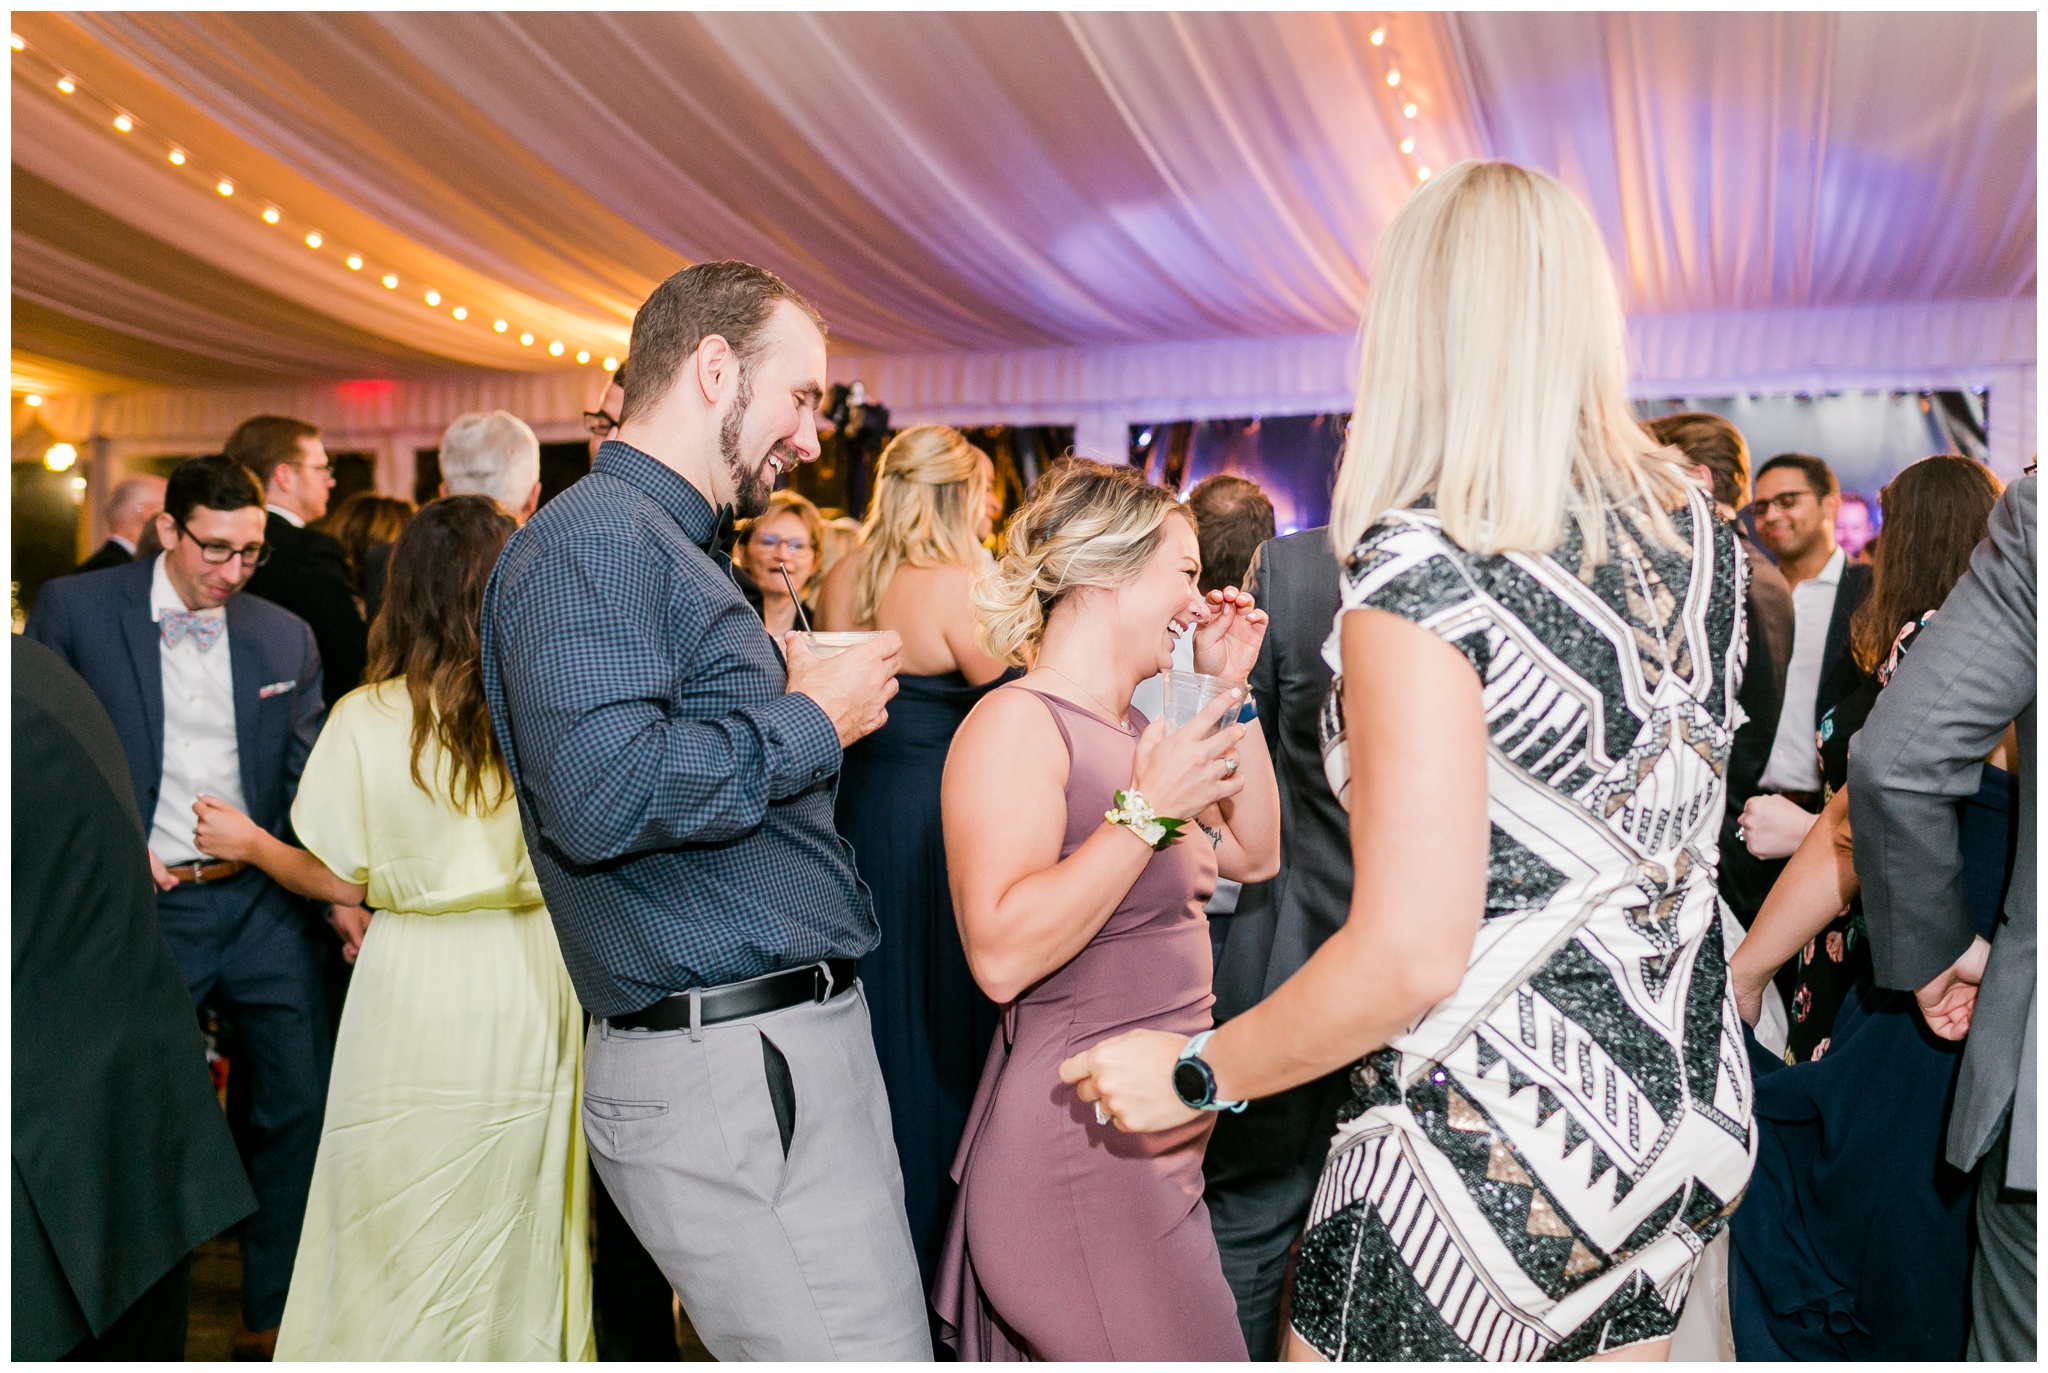 bishops_bay_country_club_wedding_middleton_wisconsin_caynay_photo_4753.jpg